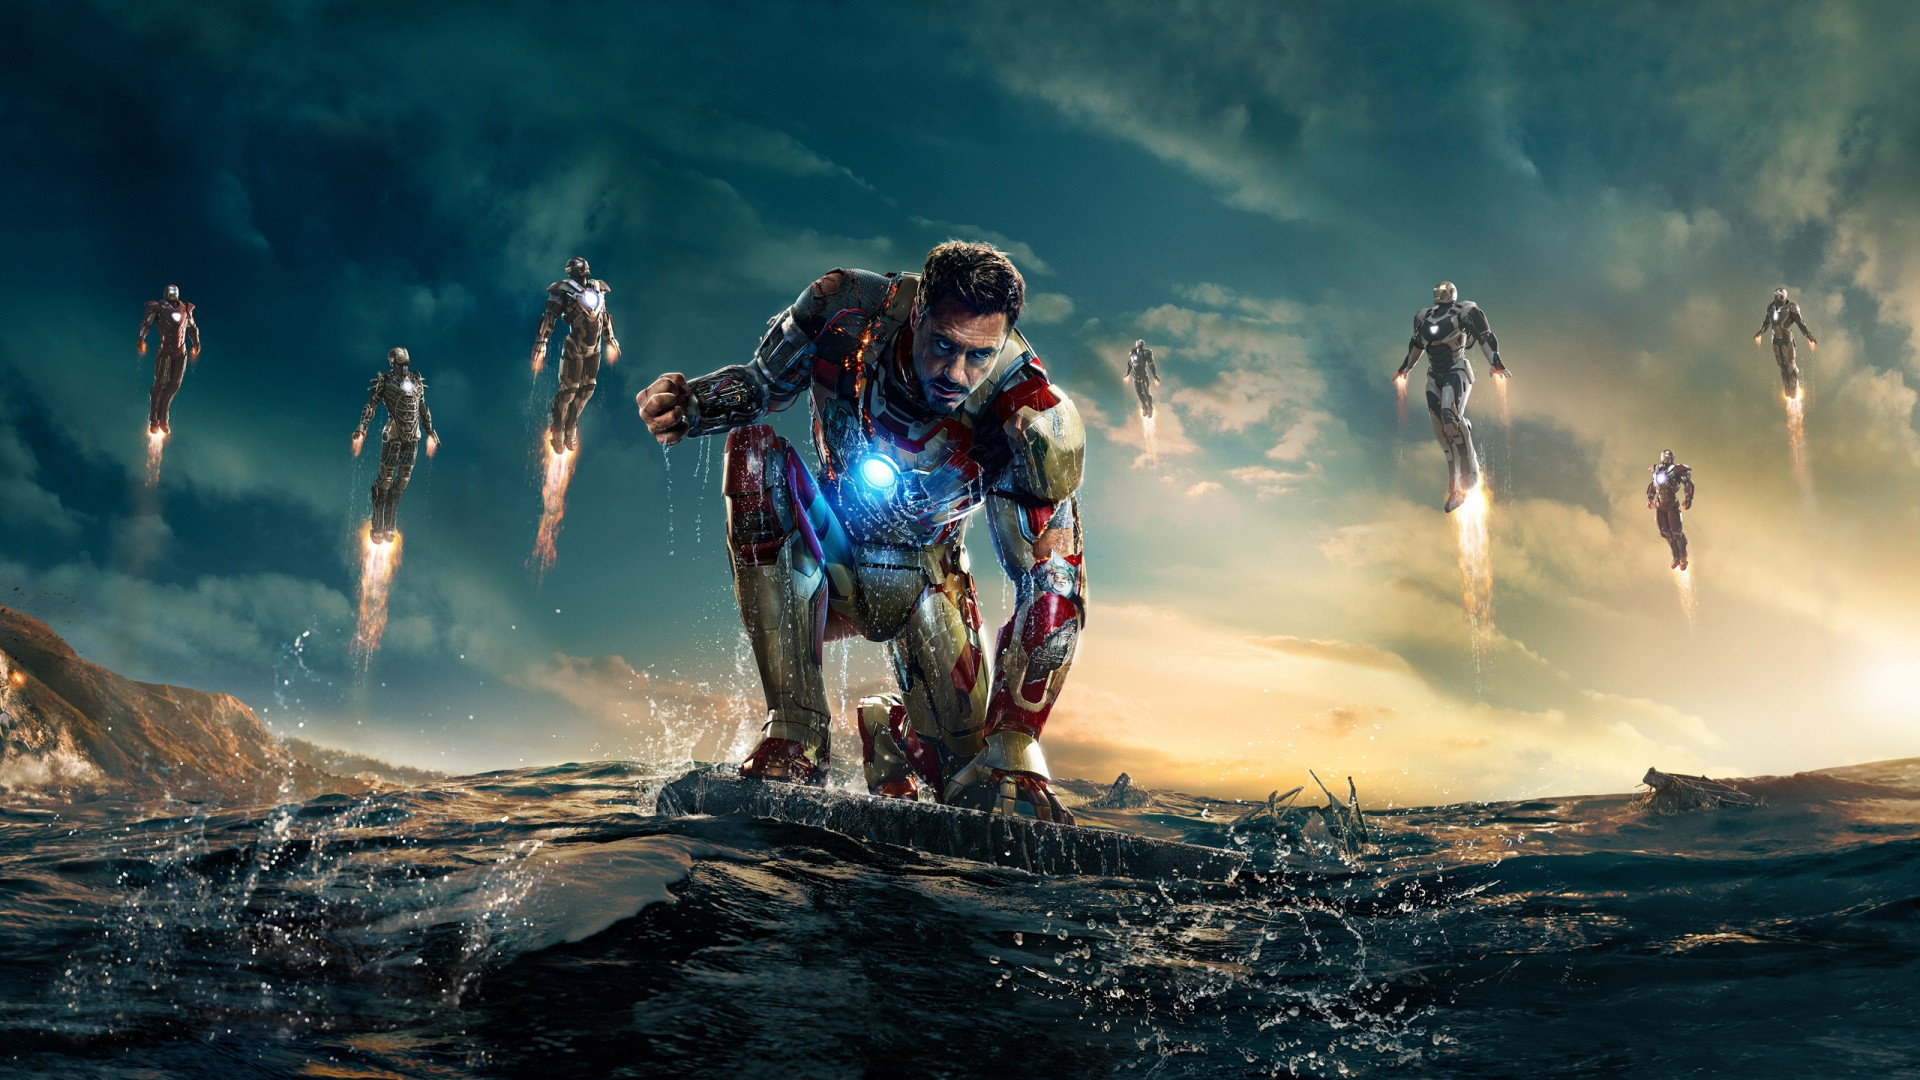 Free Download Marvel Live Action Movies Images Iron Man 3 Hd